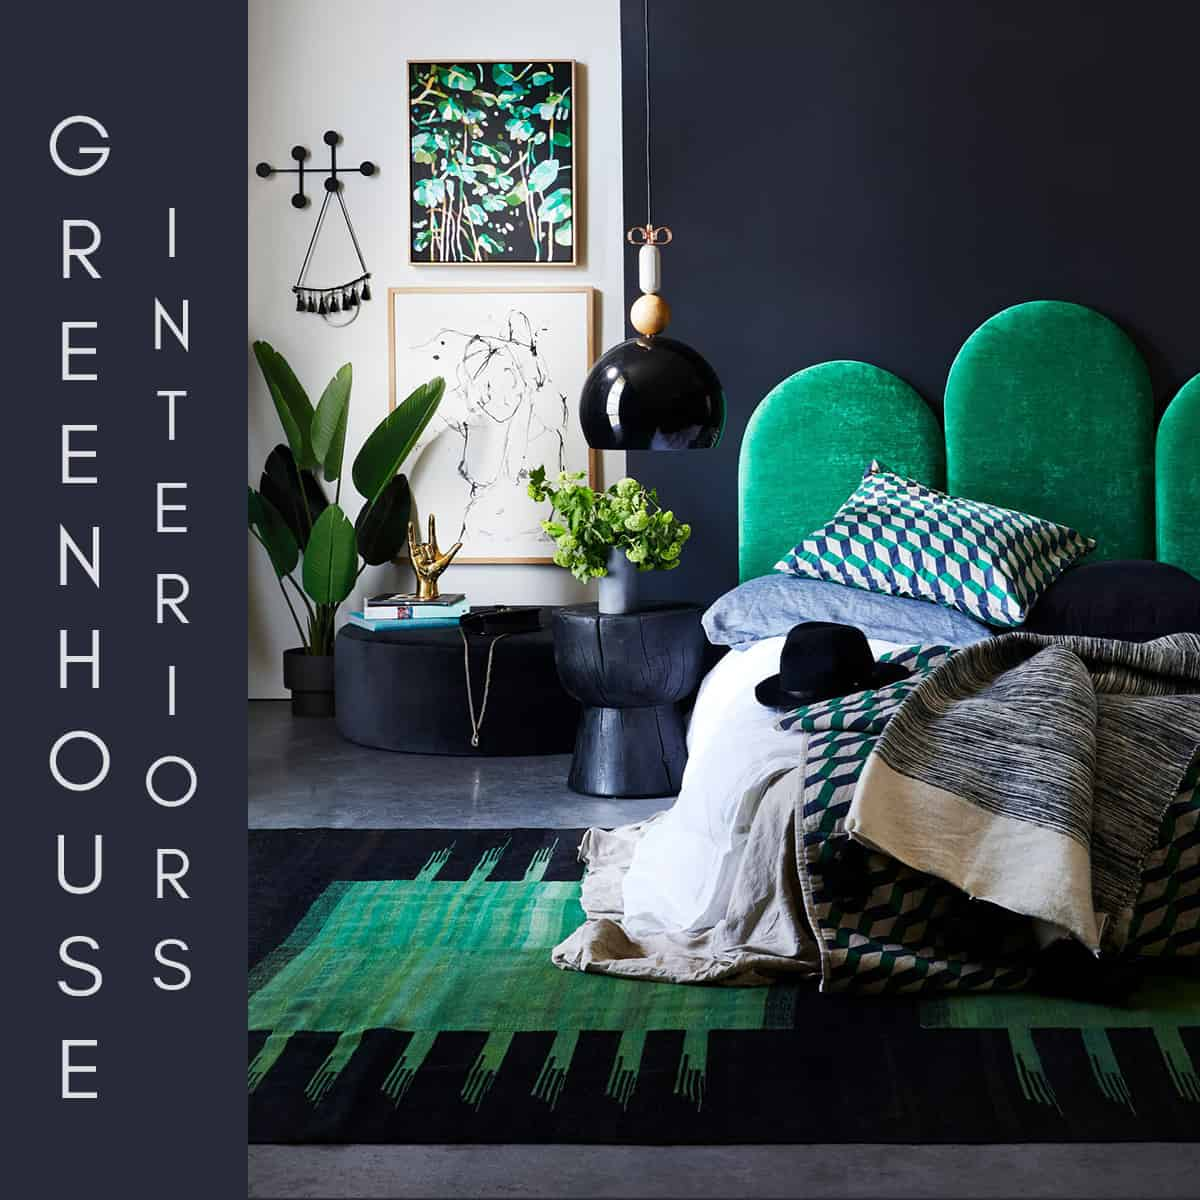 Greenhouse Interiors